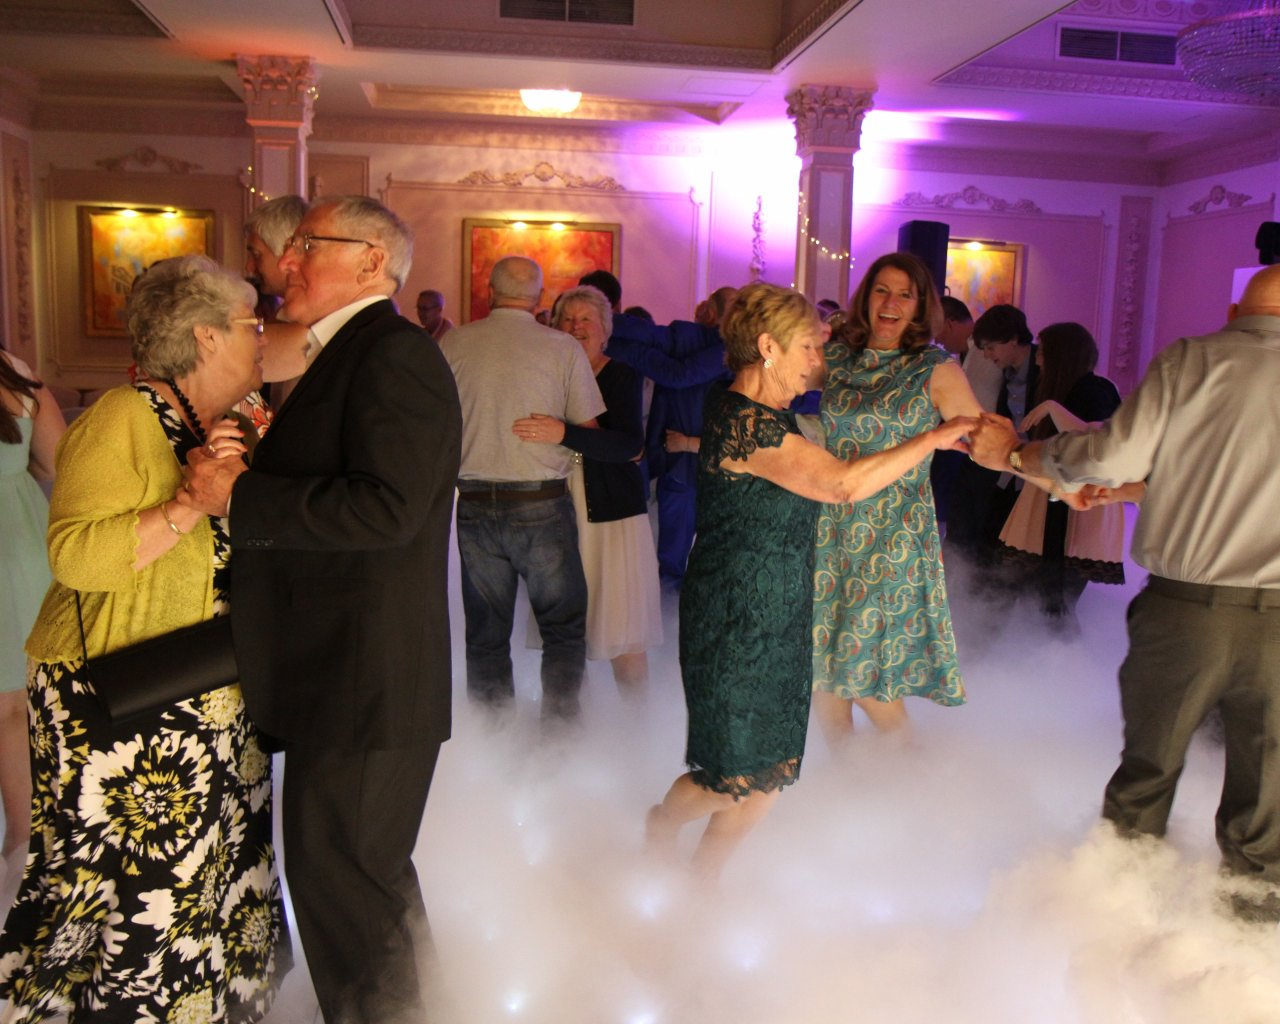 Dancing on the clouds through a starlight white led dancefloor with uplighting